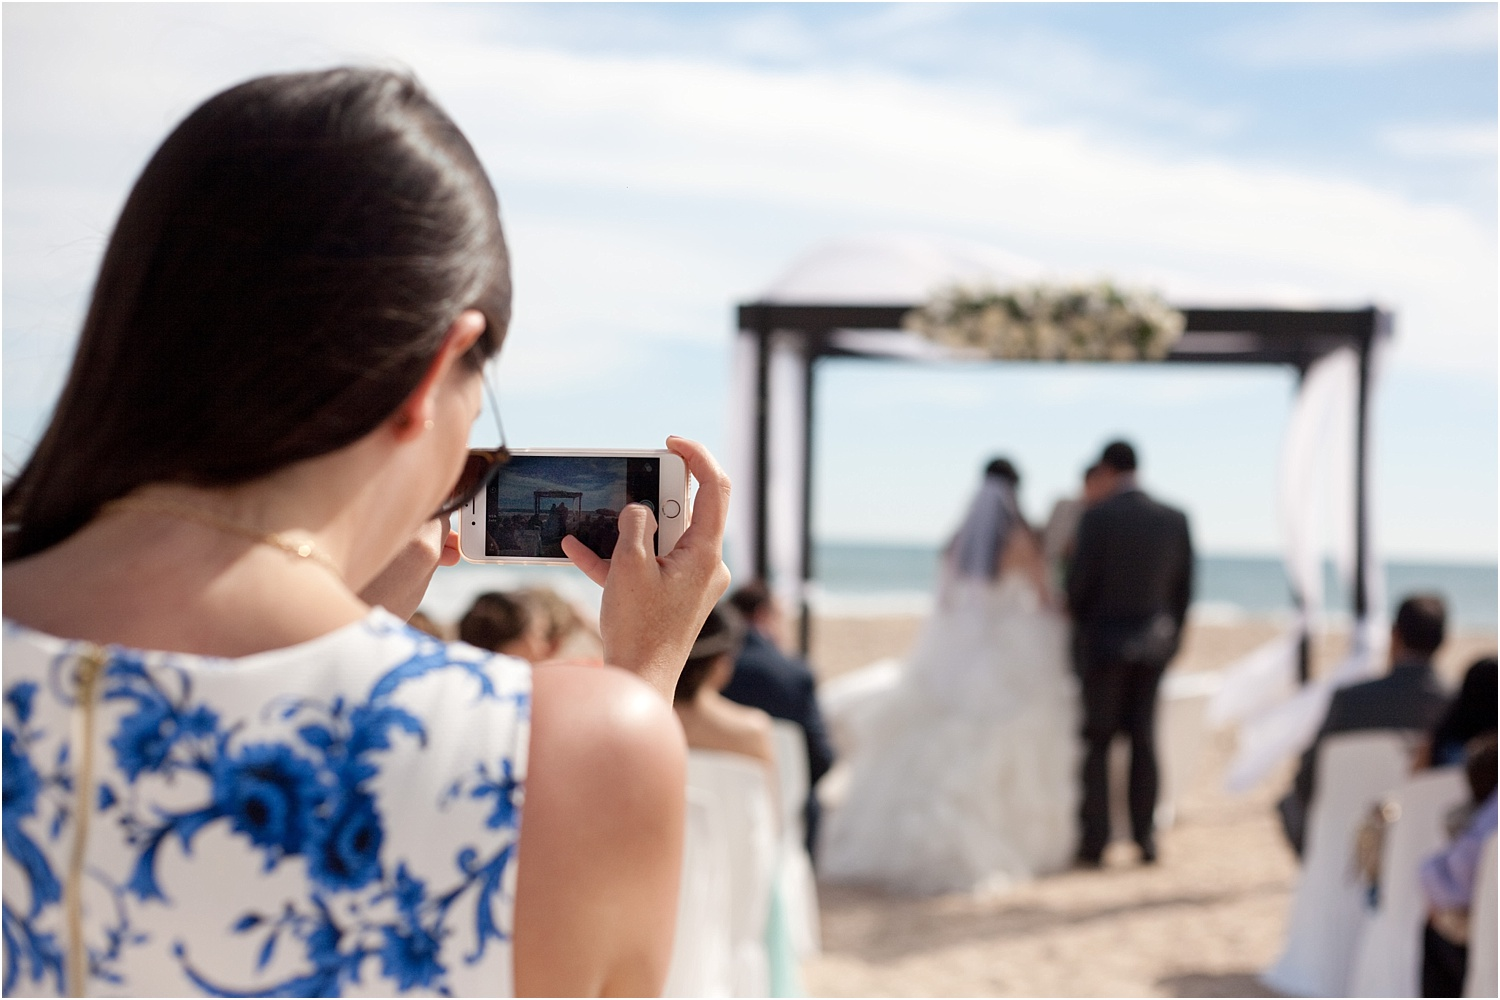 lady taking a photo at a wedding ceremony - wedding day photography